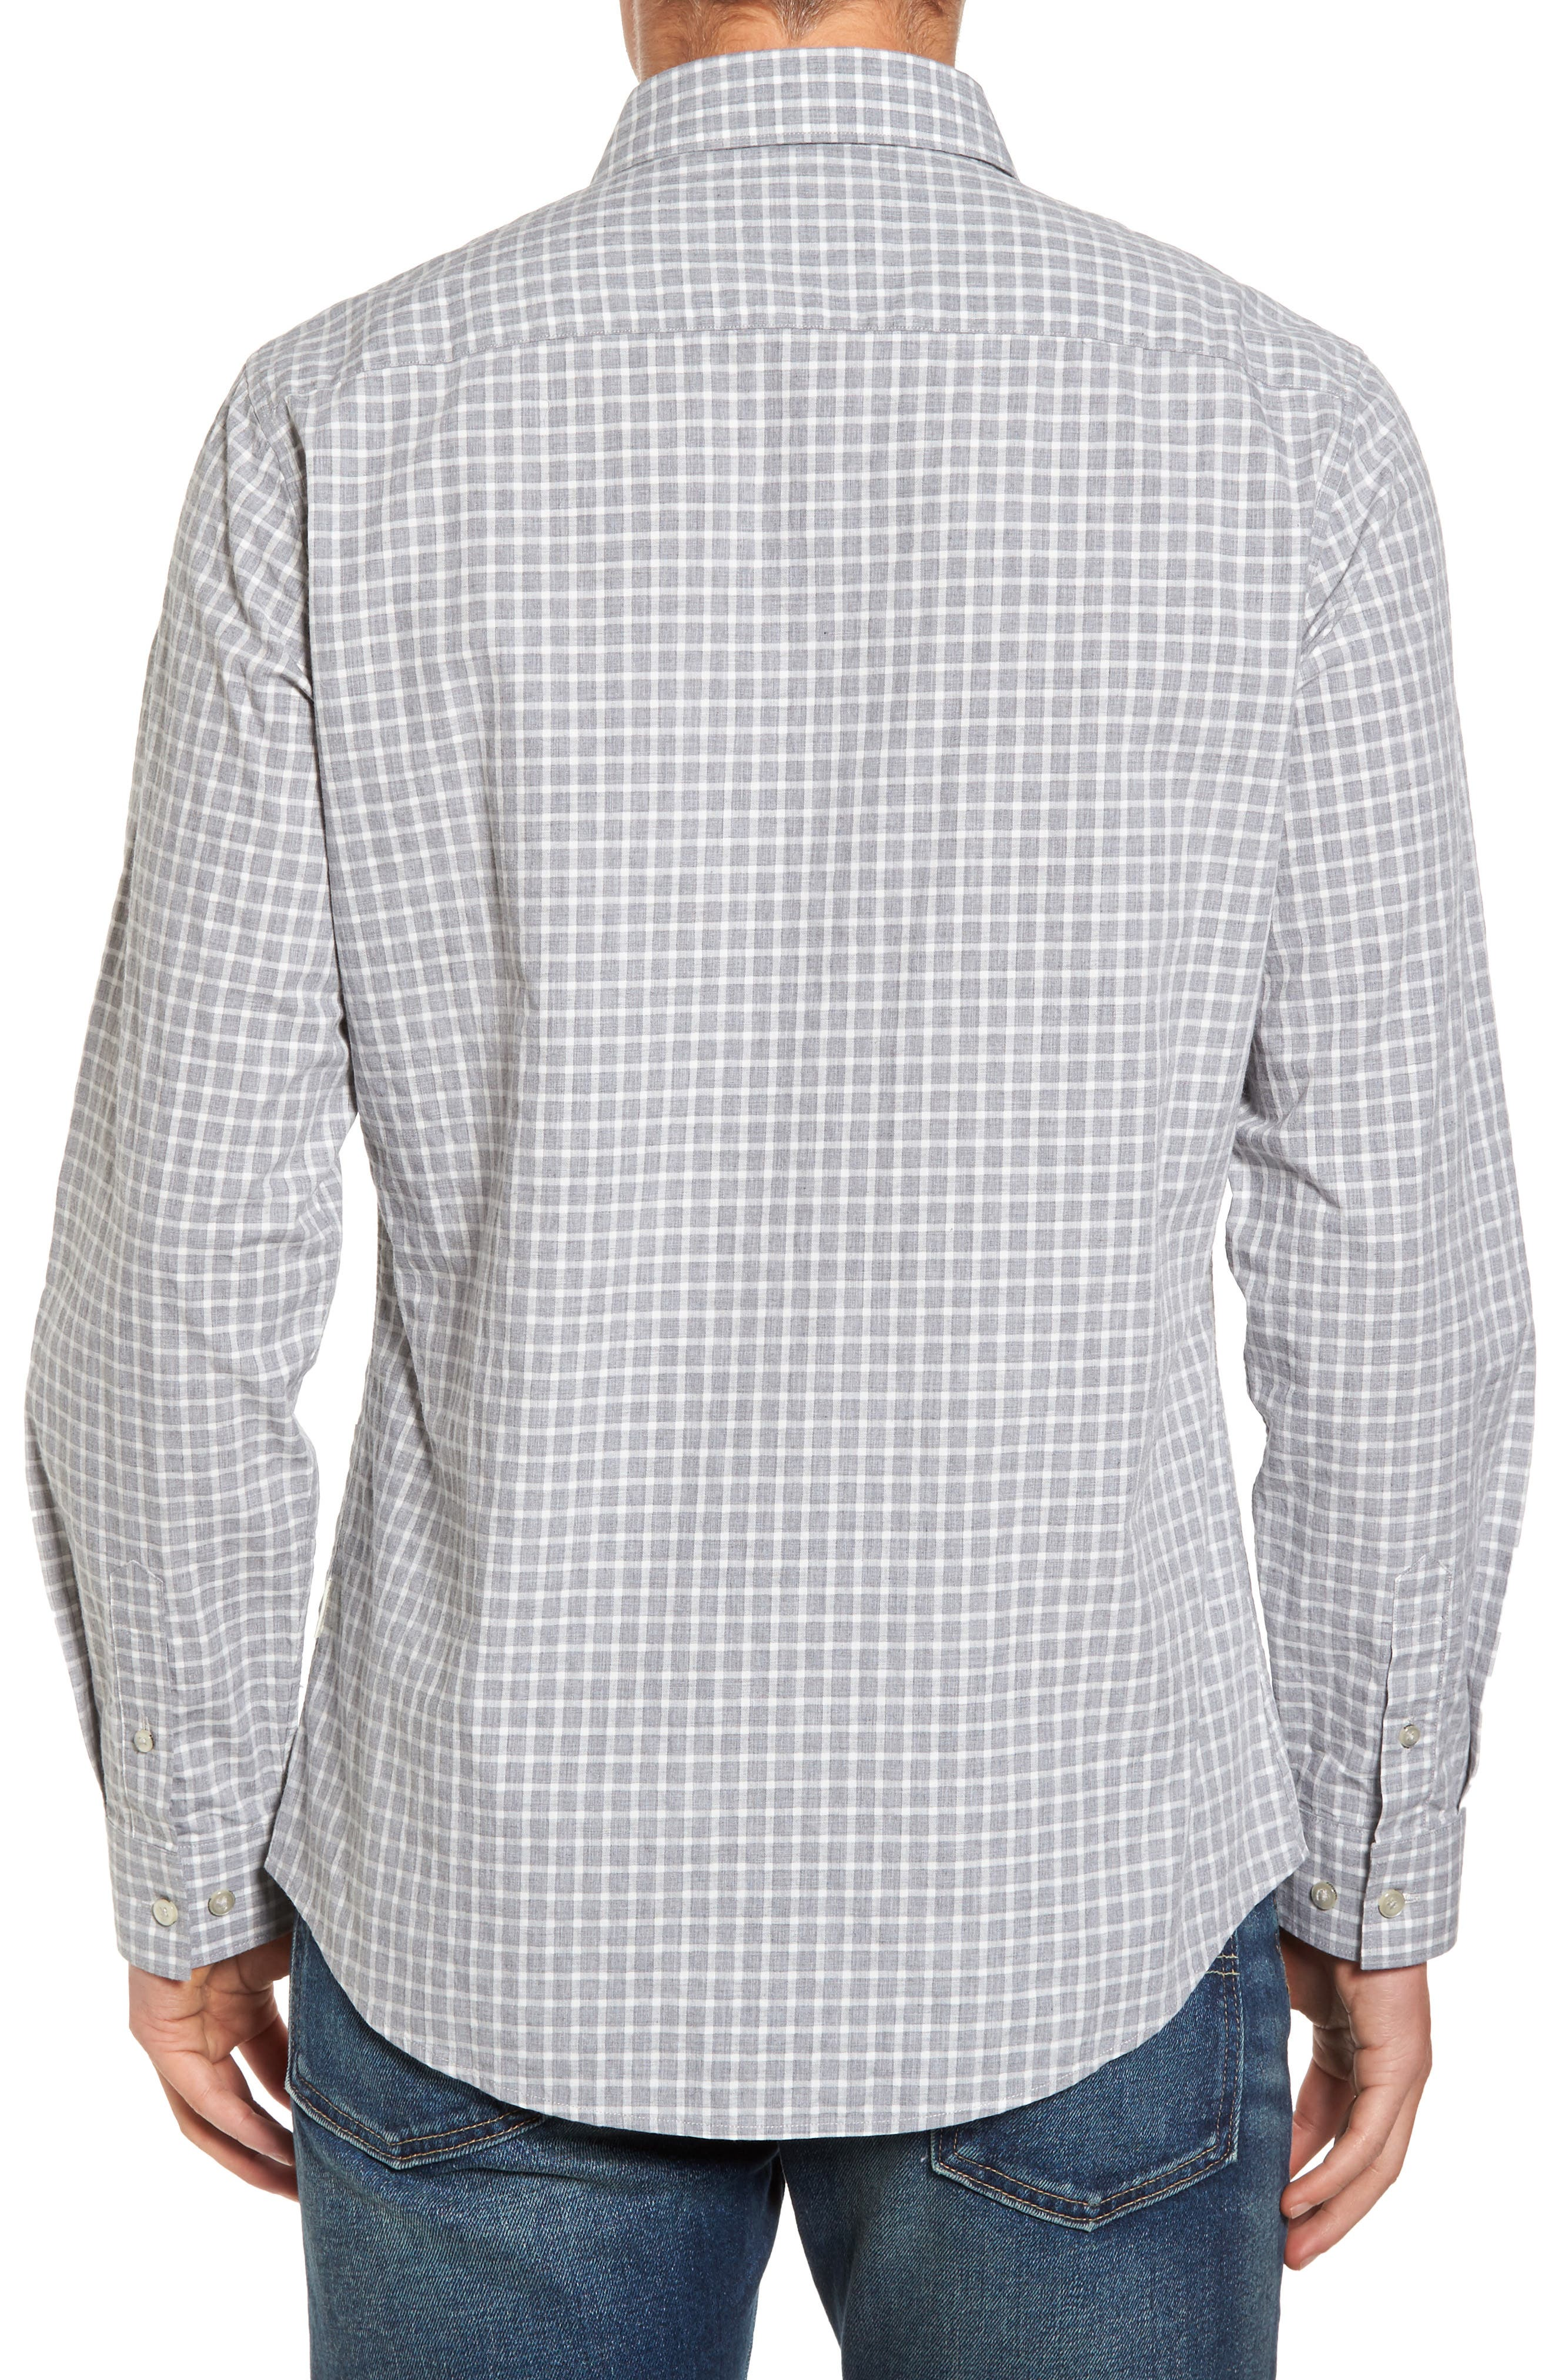 Illusions Woven Shirt,                             Alternate thumbnail 2, color,                             Lt. Grey